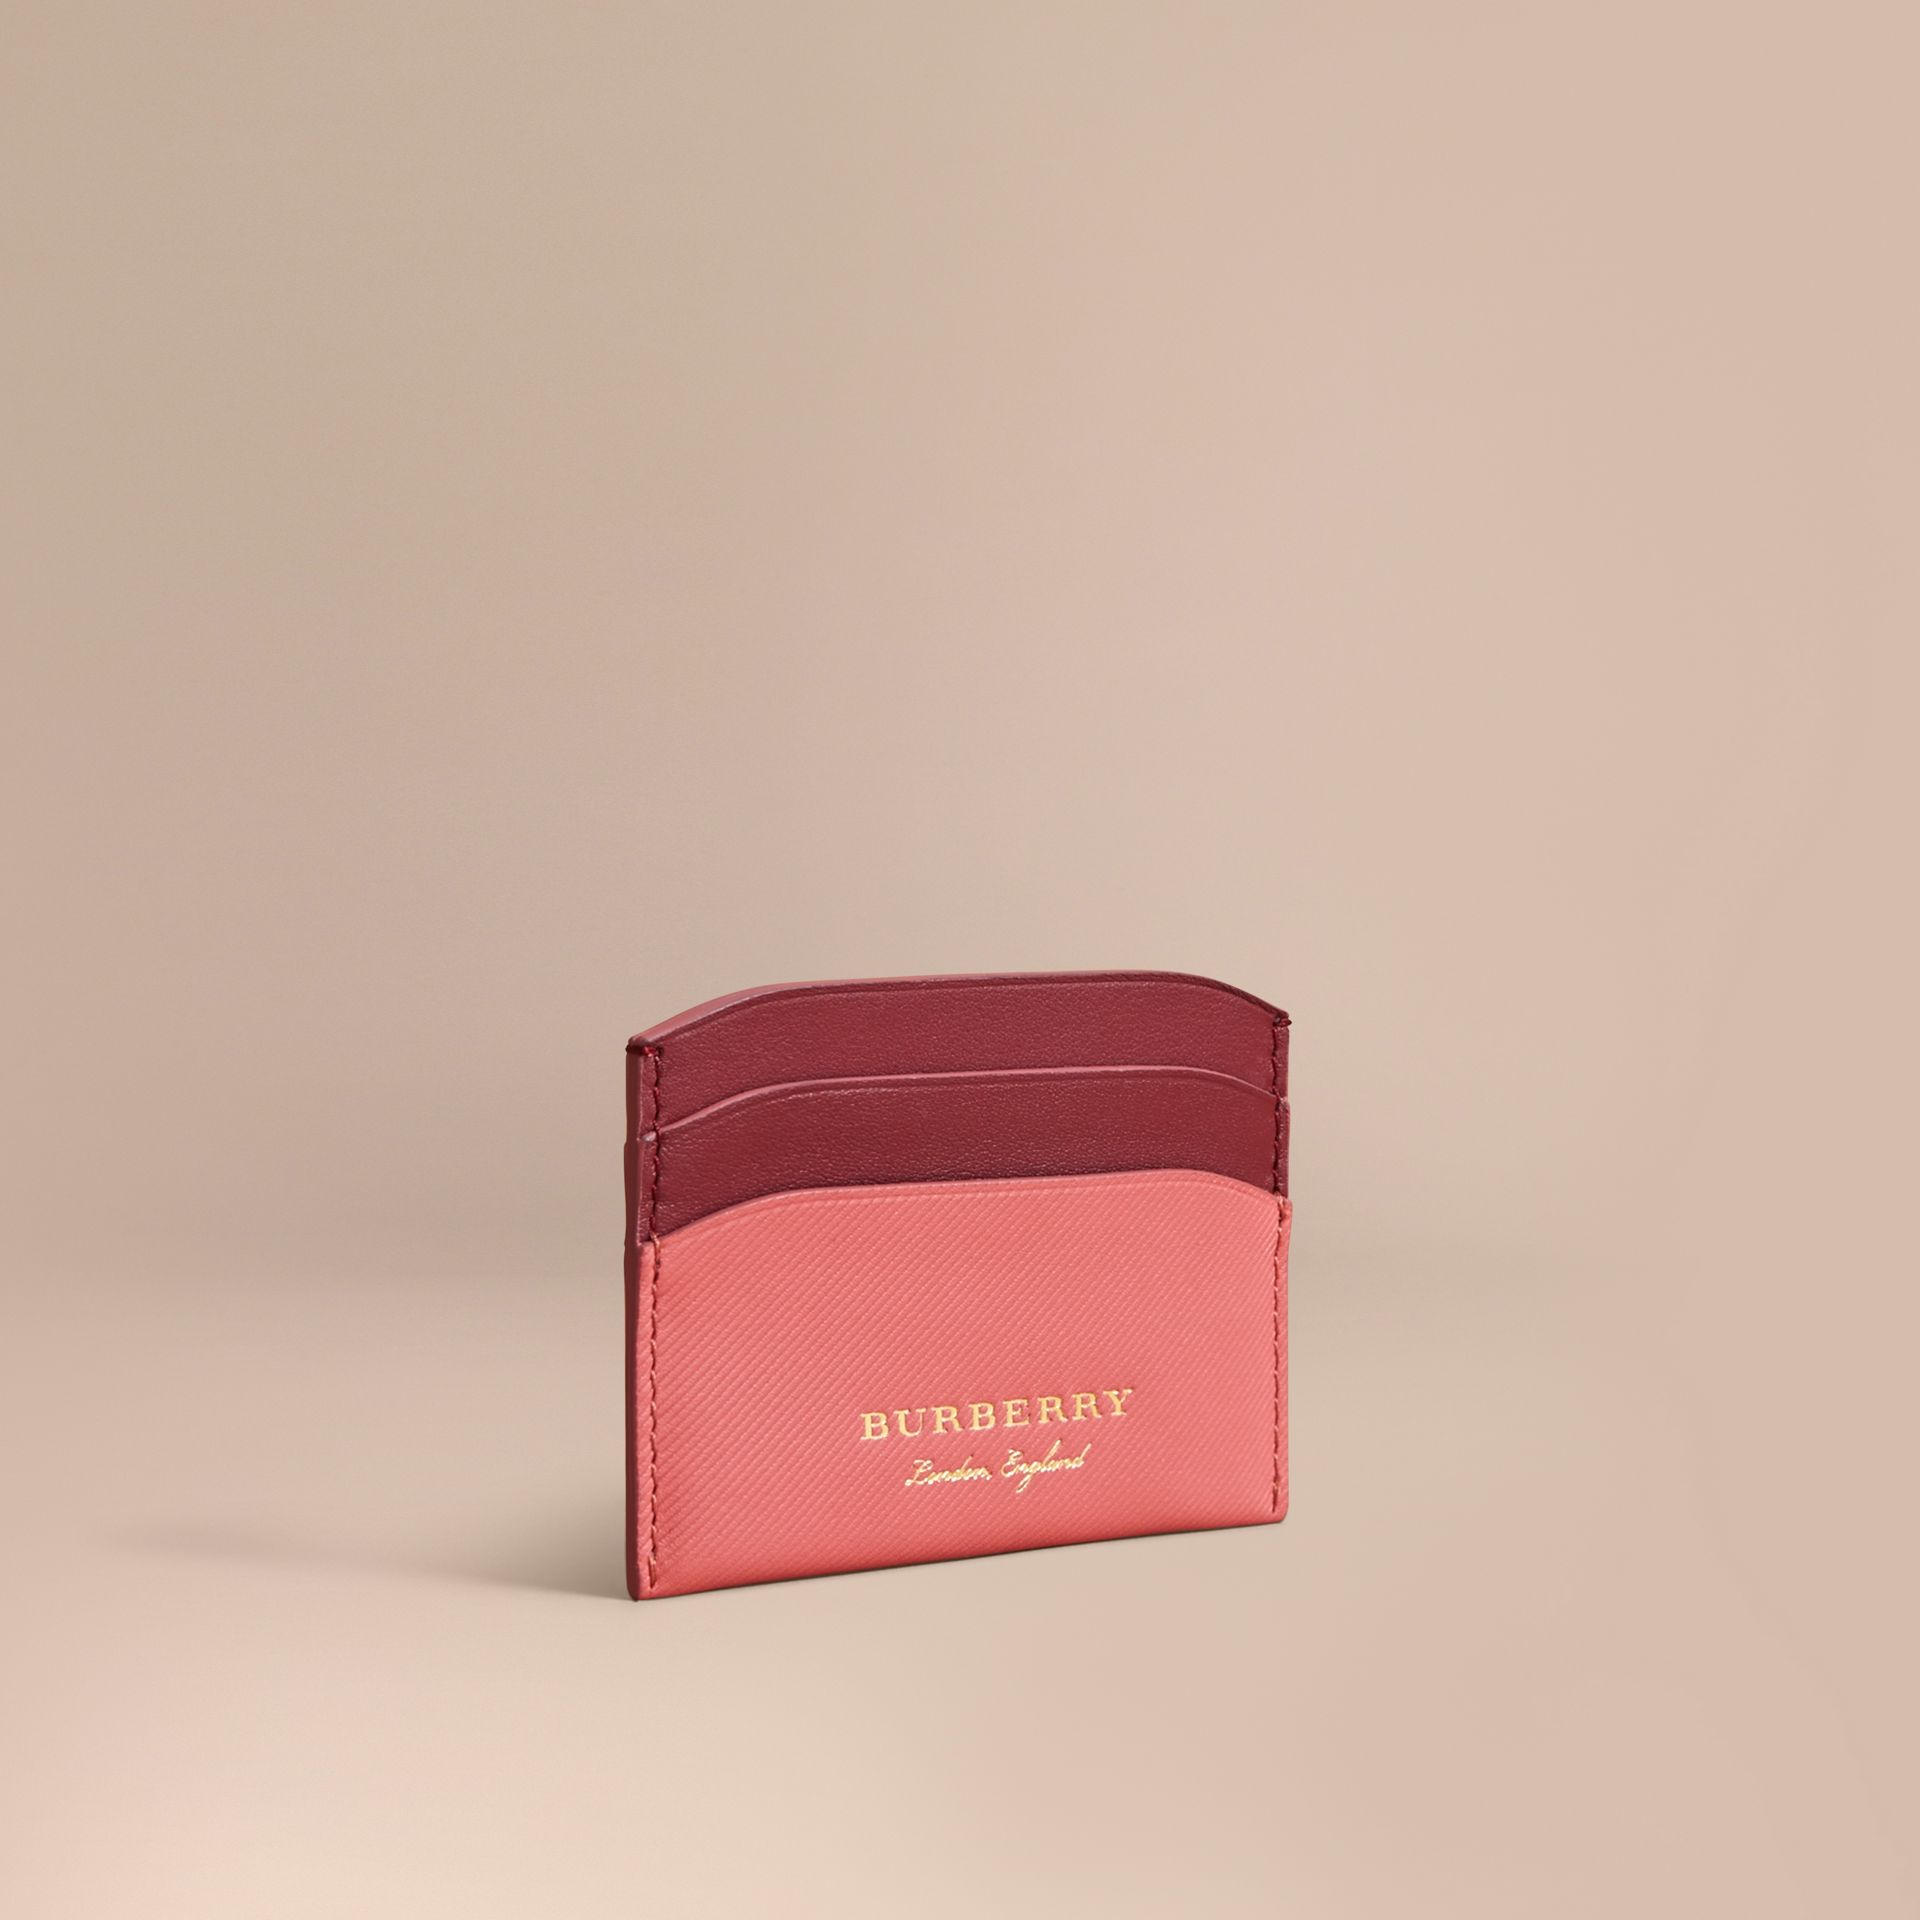 Two-tone Trench Leather Card Case in Blossom Pink/ Antique Red - Women | Burberry United Kingdom - gallery image 0